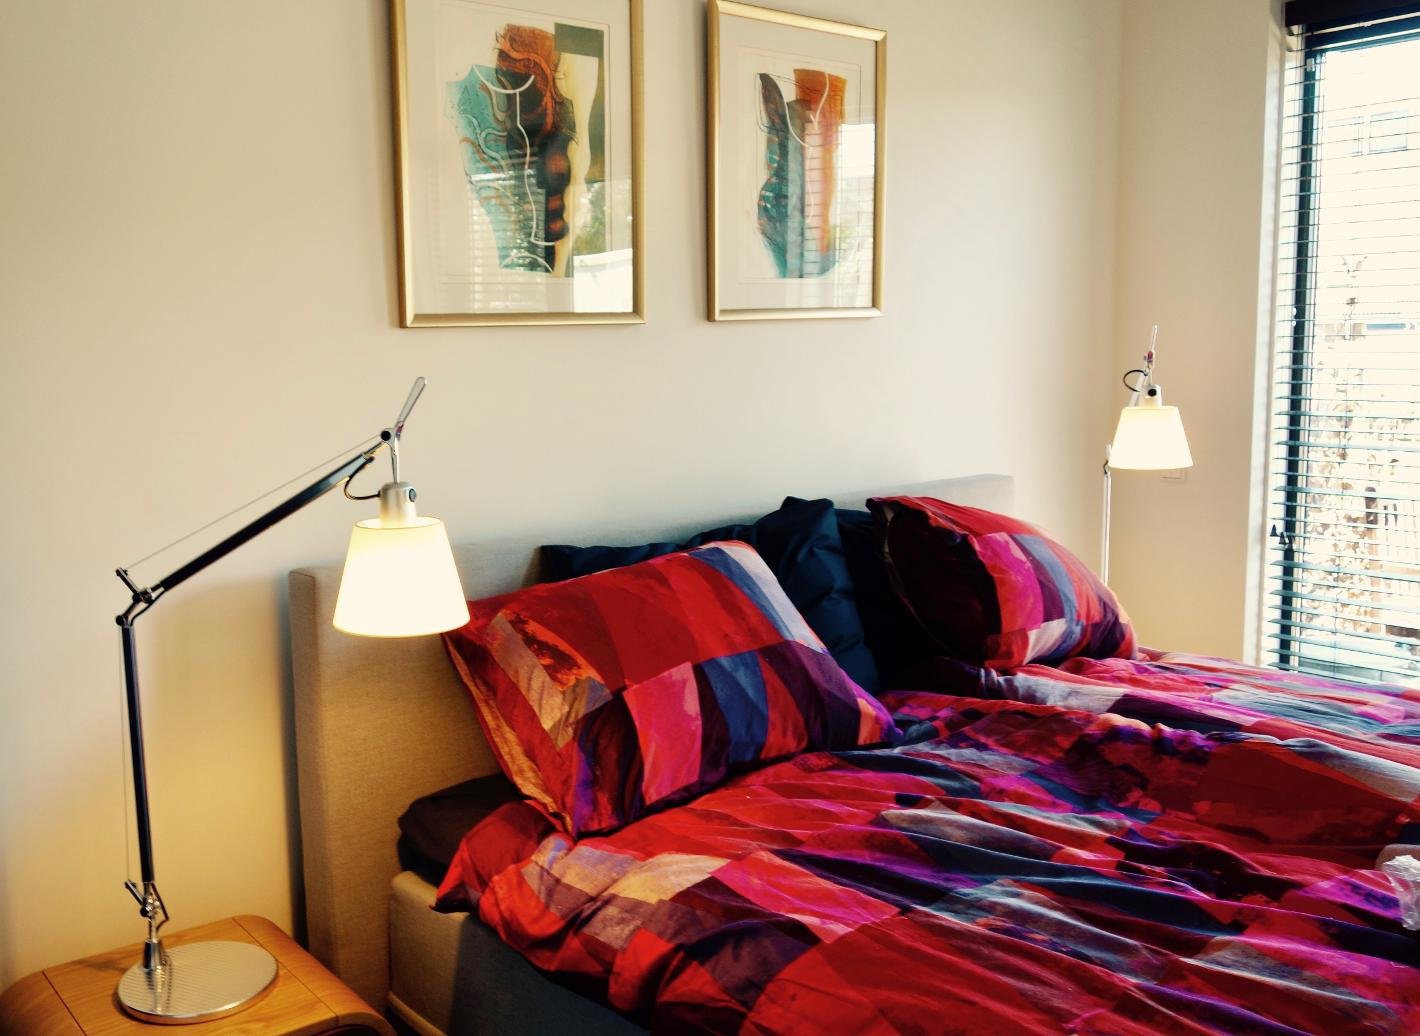 Photo B&B Arthouse Dordrecht in Dordrecht, Sleep, Spending the night - #4